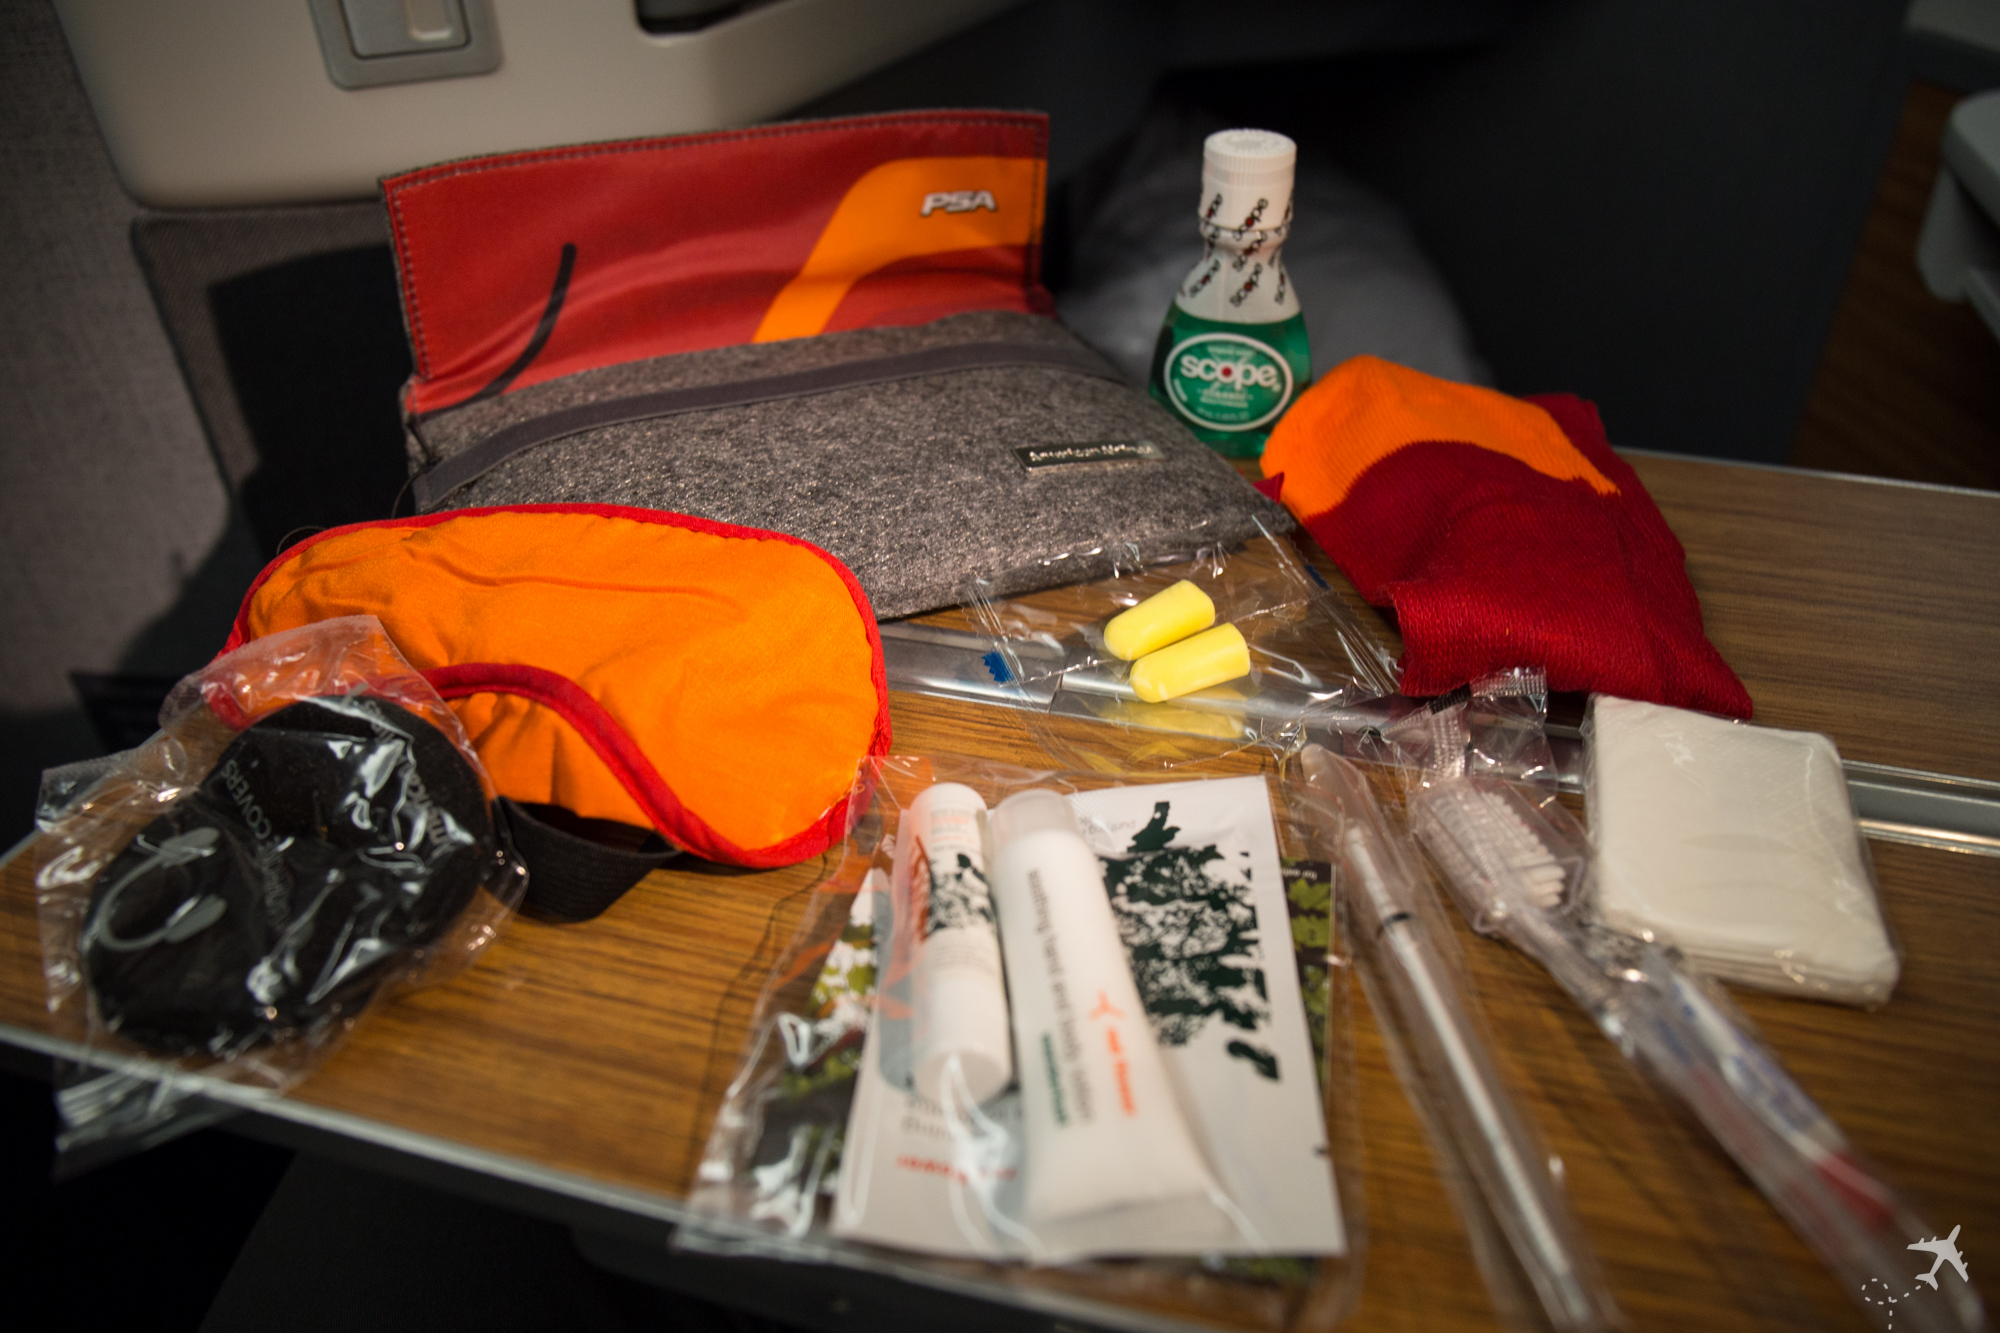 American Airlines Business Class Amenity Kit